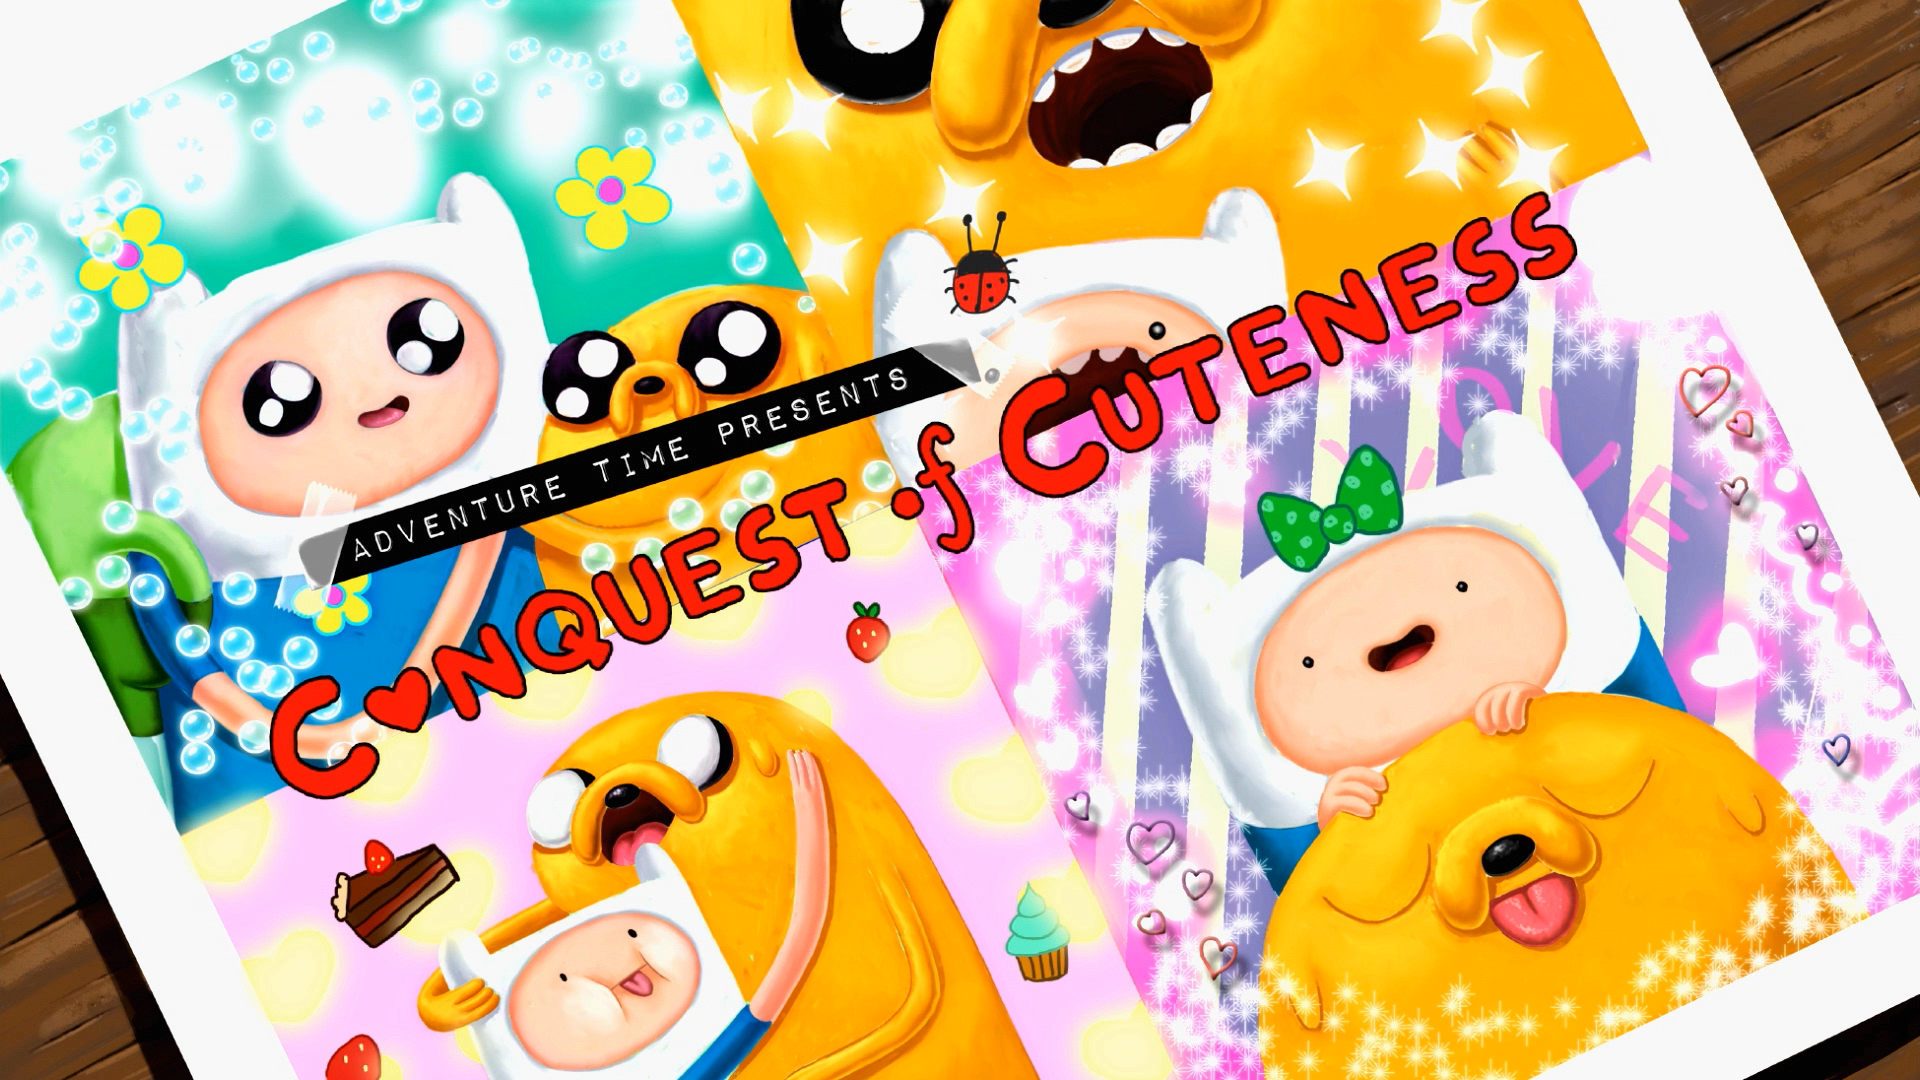 Conquest of Cuteness | Adventure Time Wiki | FANDOM powered by Wikia